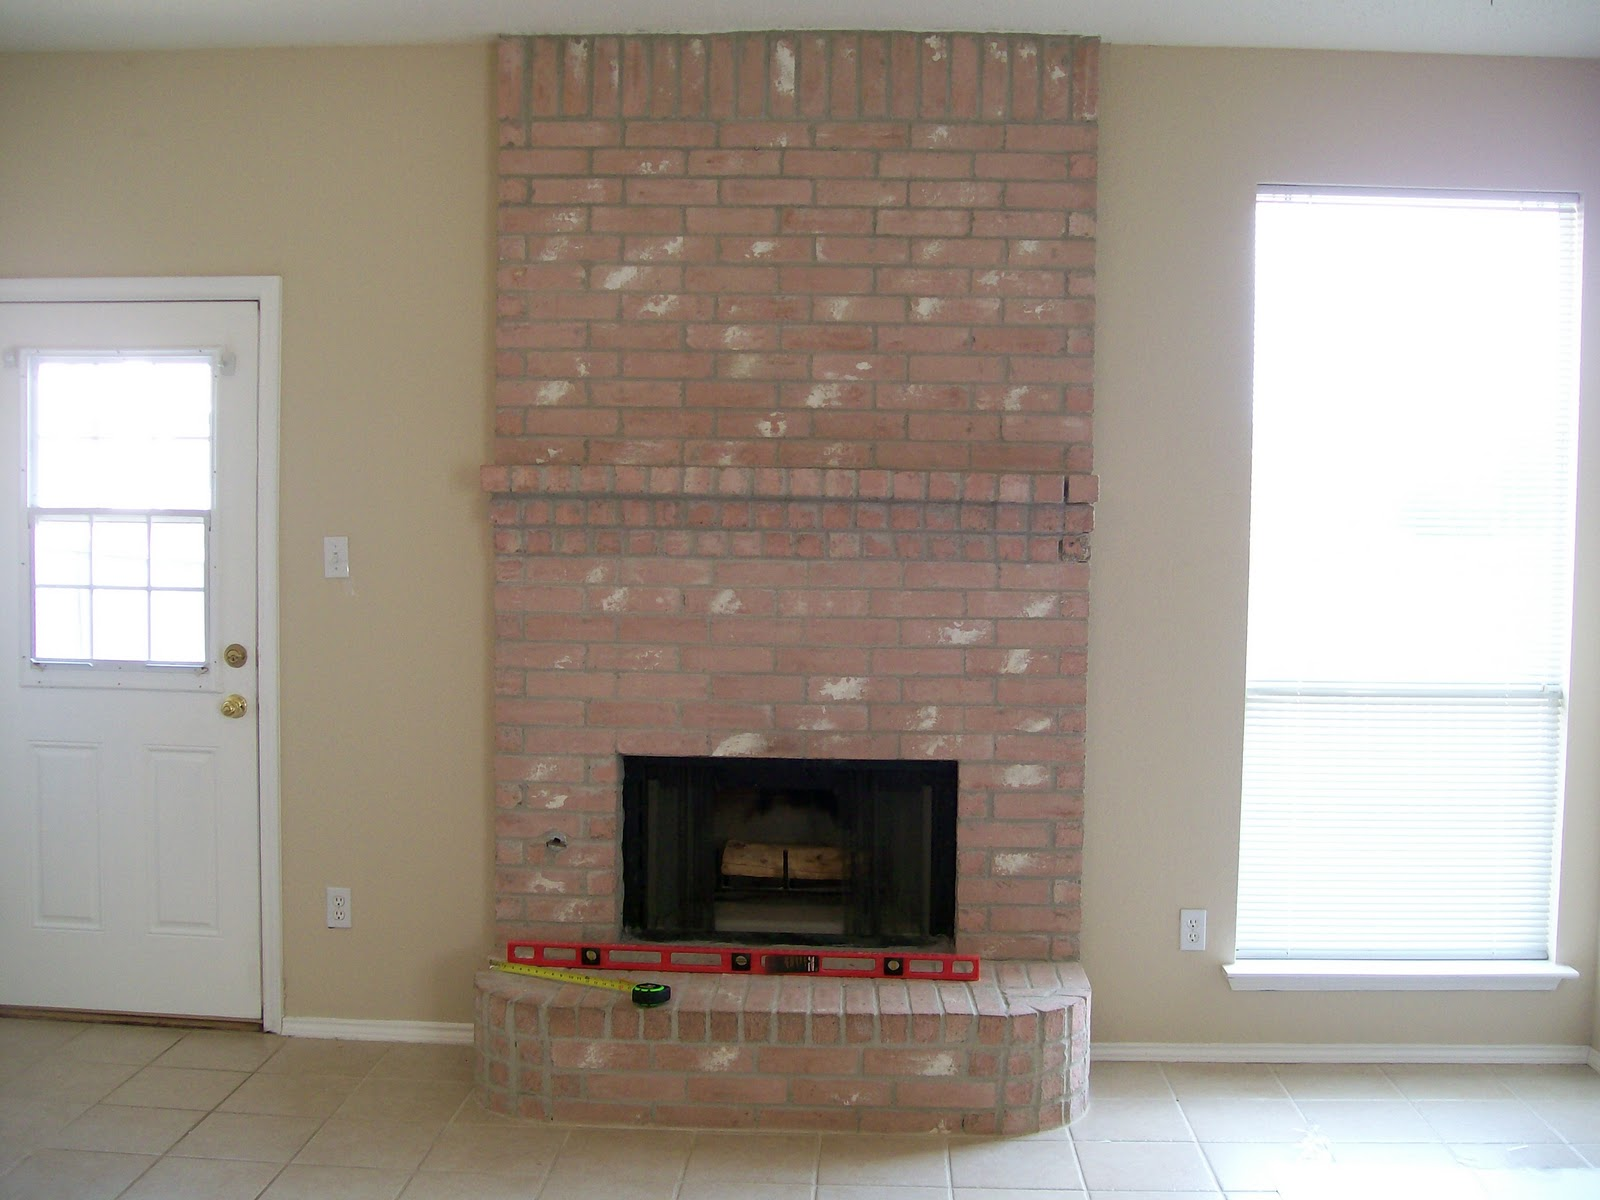 Diy Fireplace Refacing Stone Make An Easy Fireplace Refacing The Pear Tree Cottage: House Tour